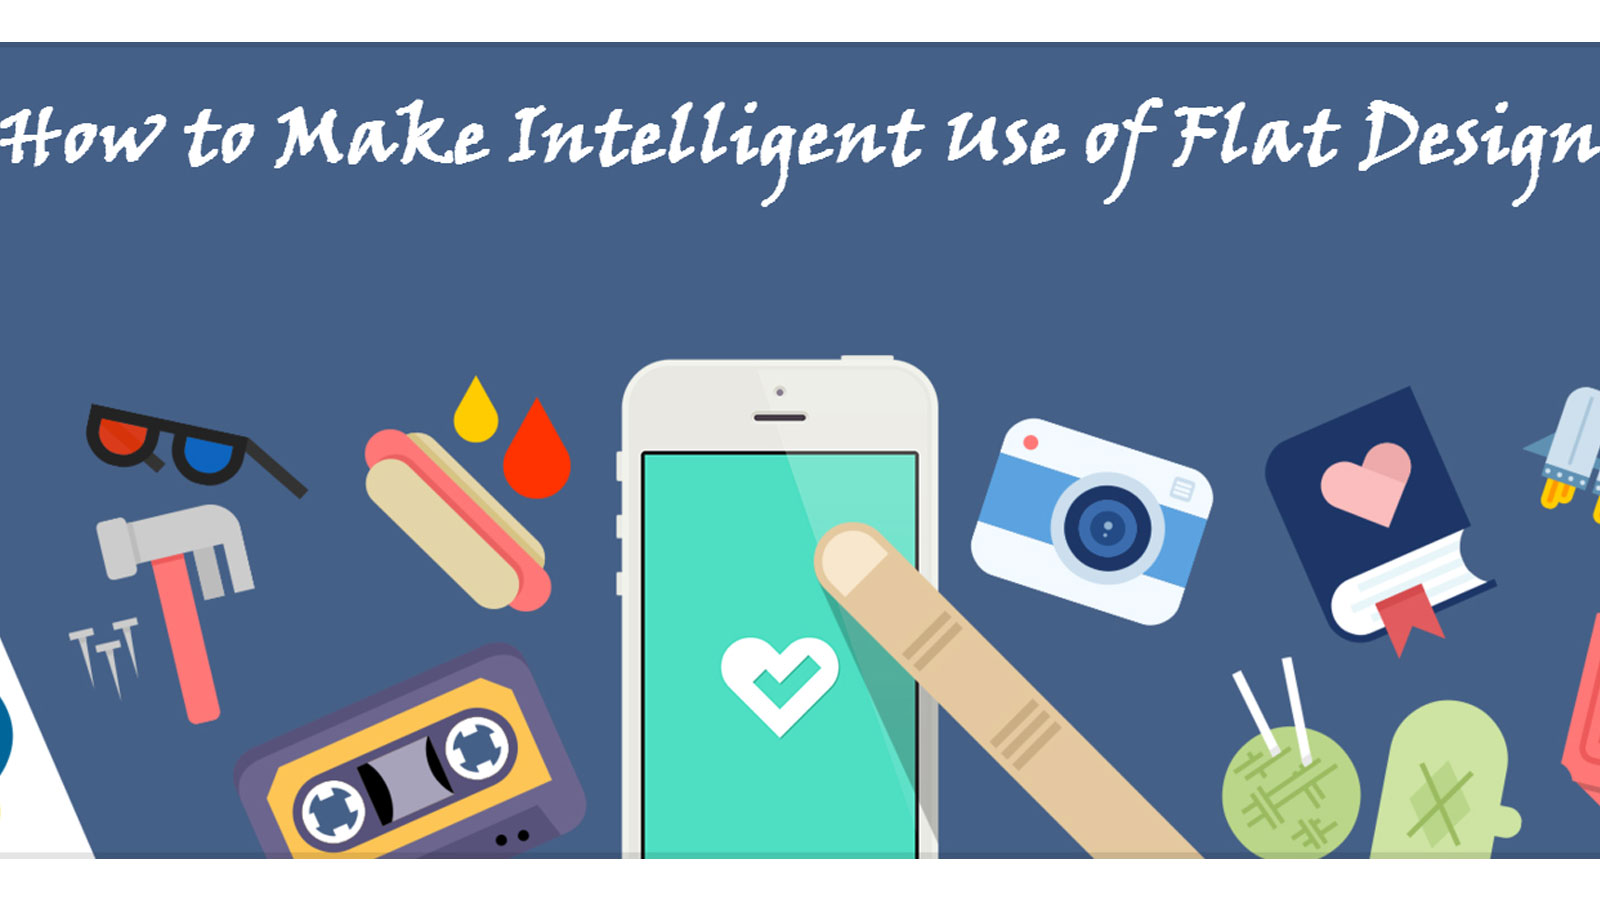 How to Make Intelligent Use of Flat Design